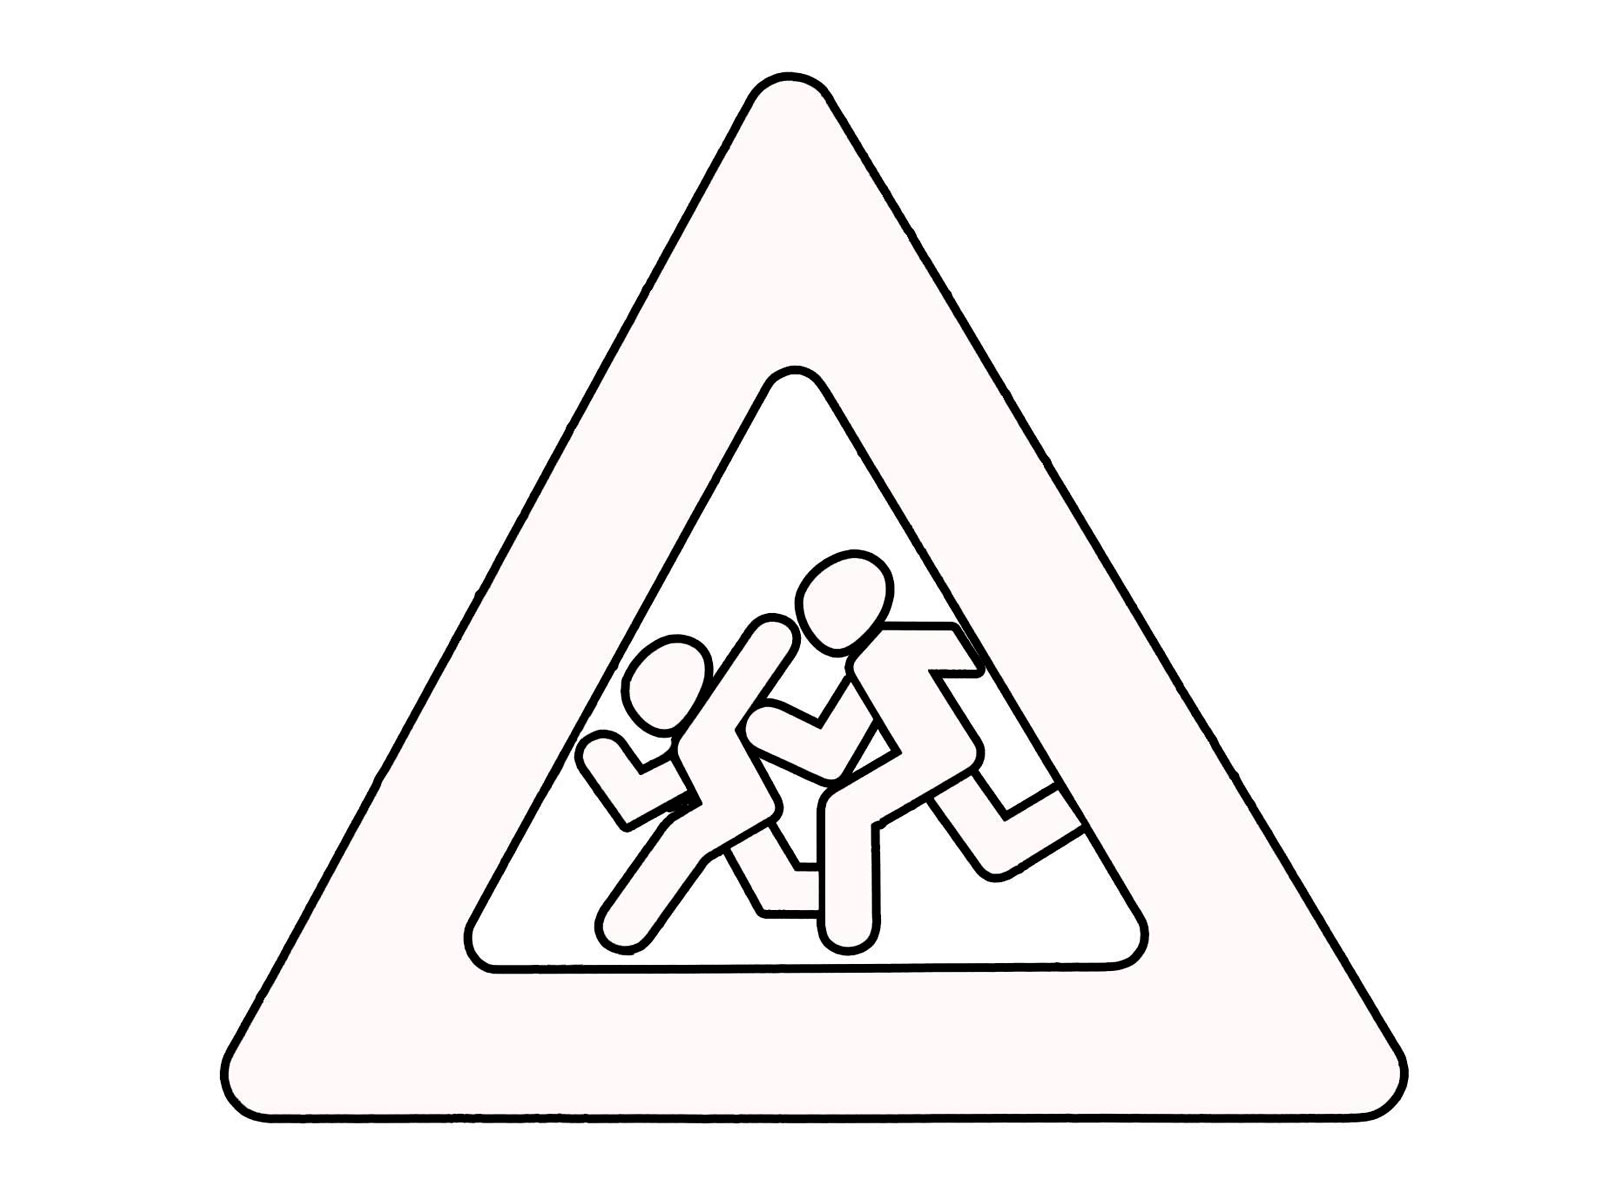 free road signs coloring pages - photo#16